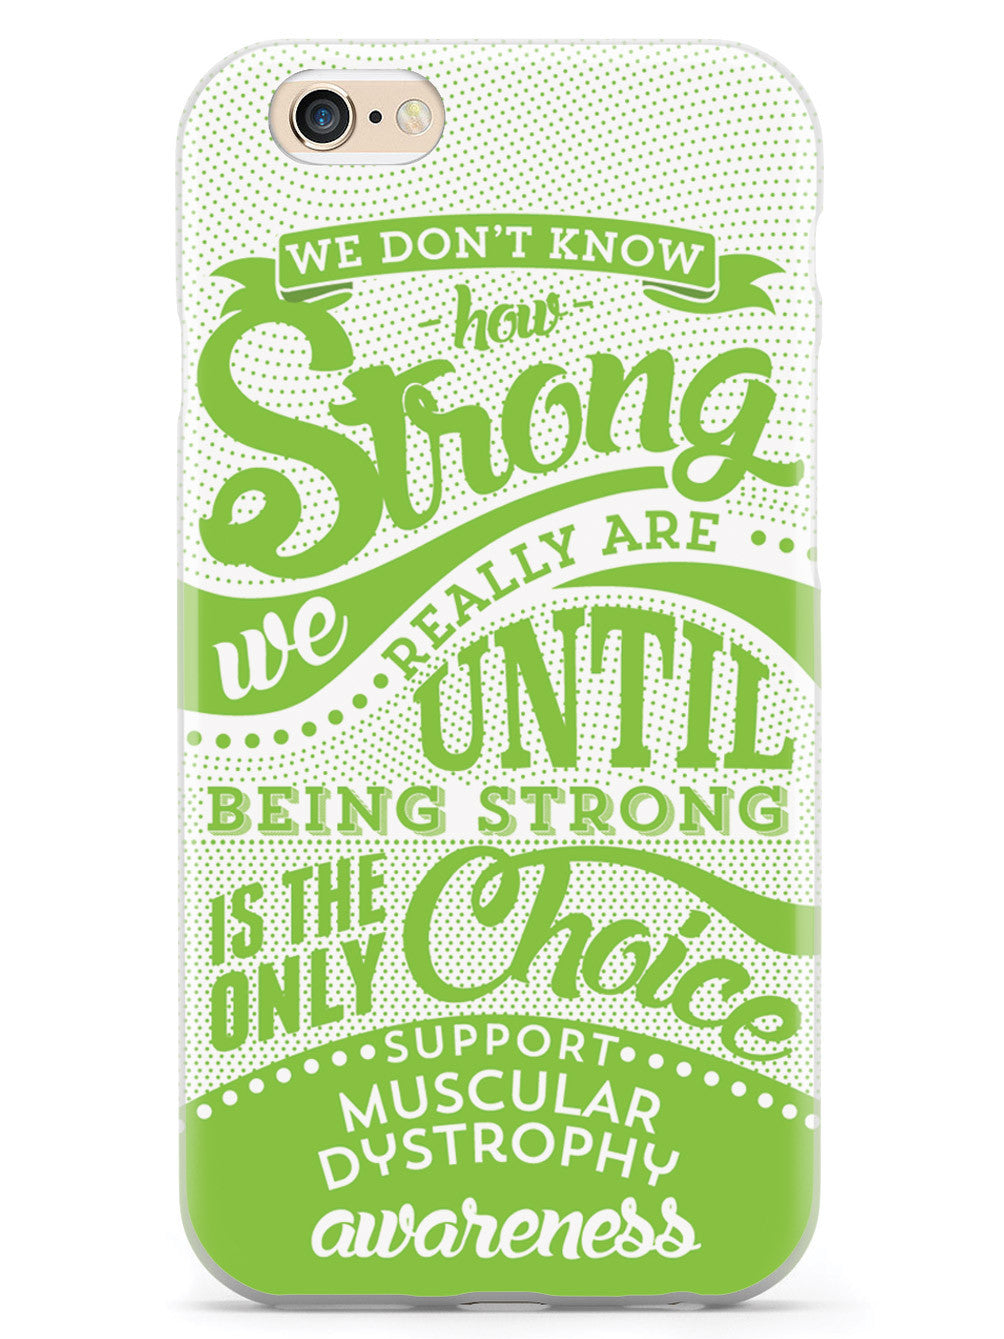 How Strong - Muscular Dystrophy Awareness Case